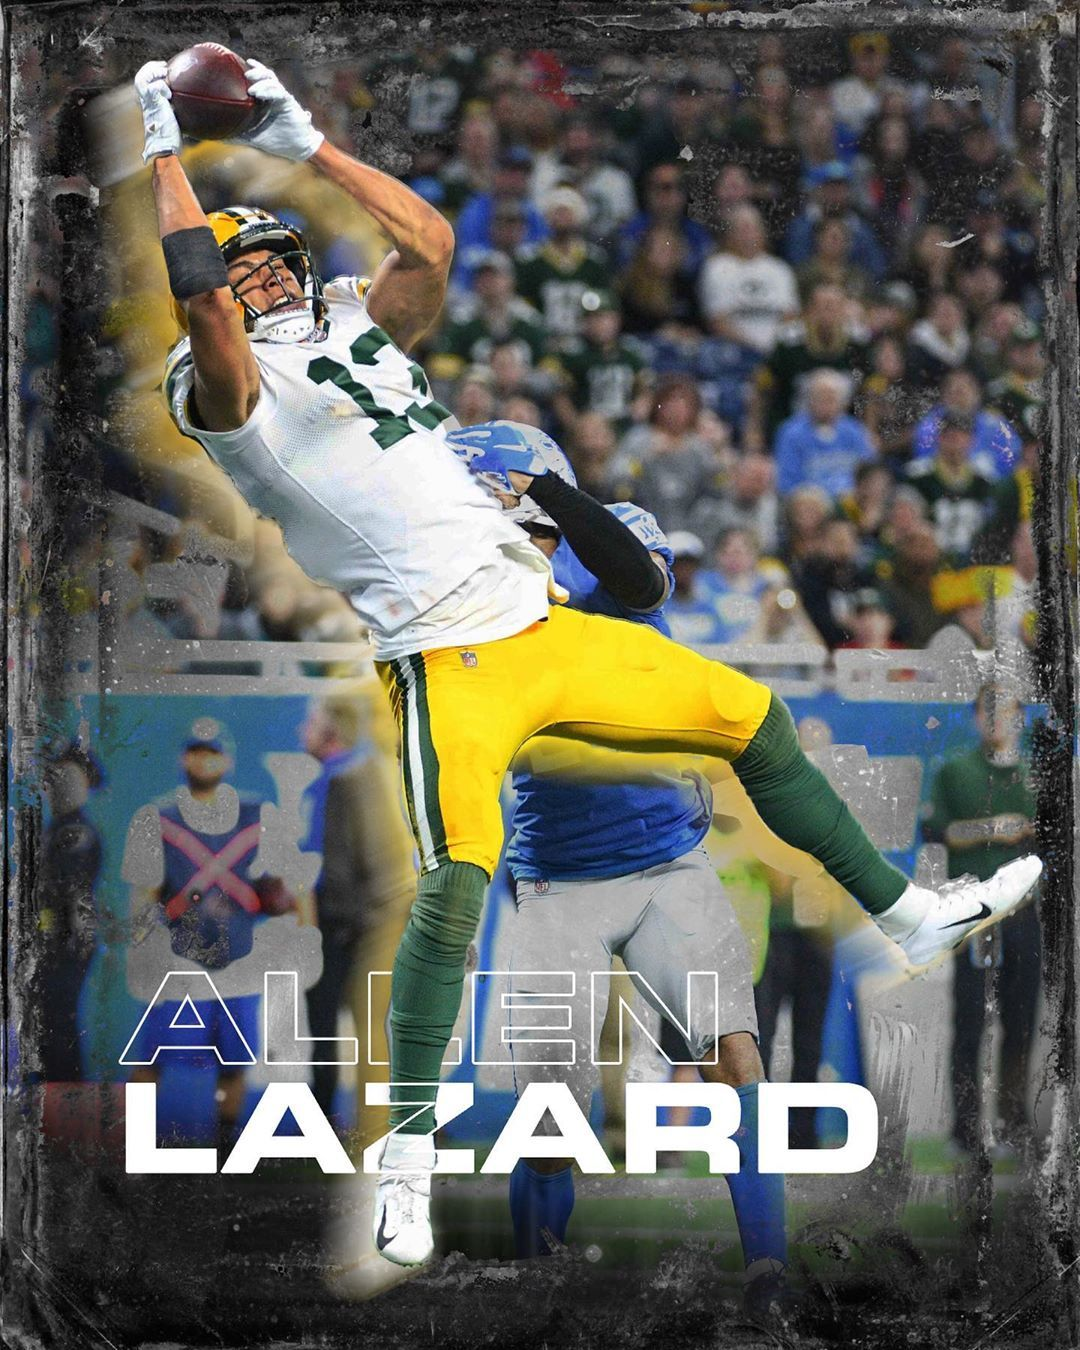 Green Bay Packers Fanpage On Instagram How Many Receiving Yards Will Allen Lazard Have This Year For More Packer In 2020 Green Bay Packers Green Bay Packers